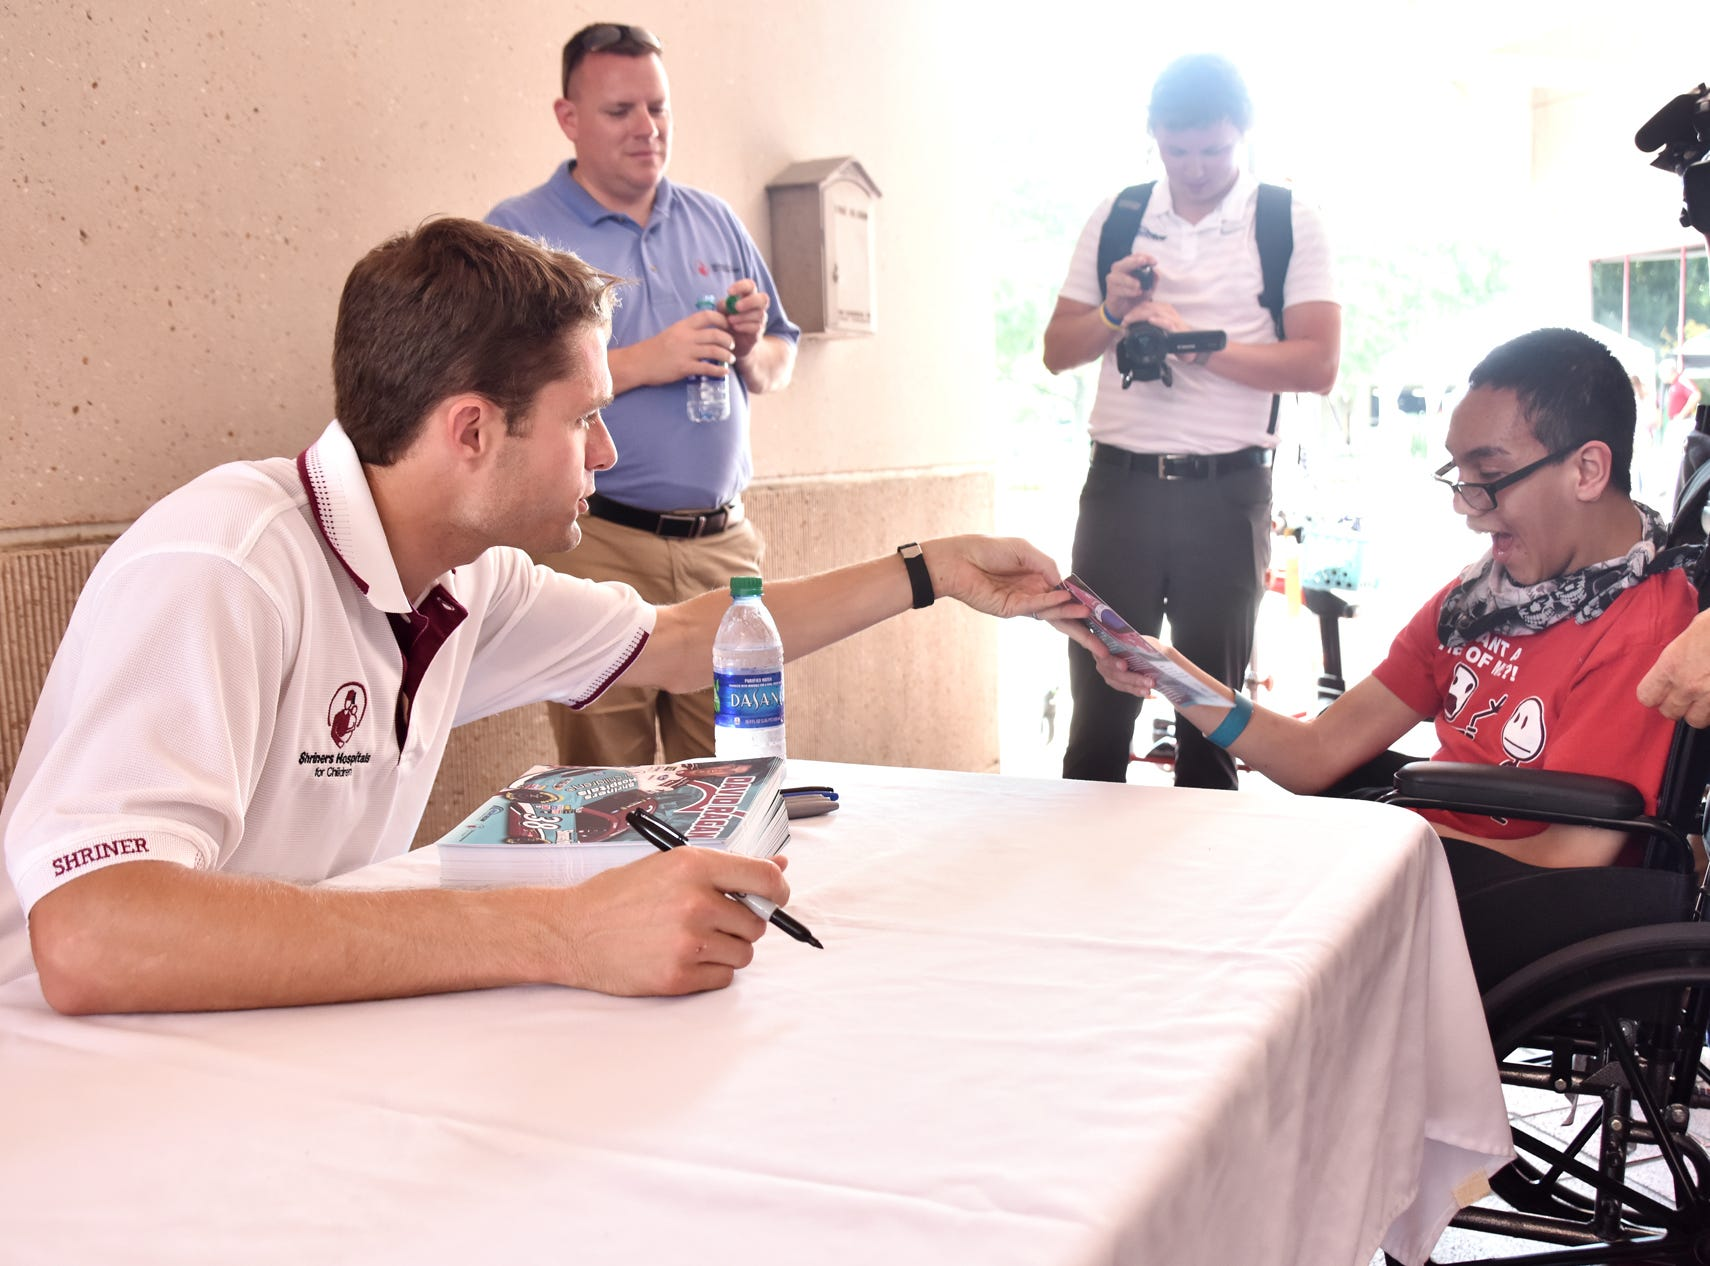 NASCAR driver David Ragan signs autographs at the Shriners Hospital for Children in Greenville on August 15, 2018.